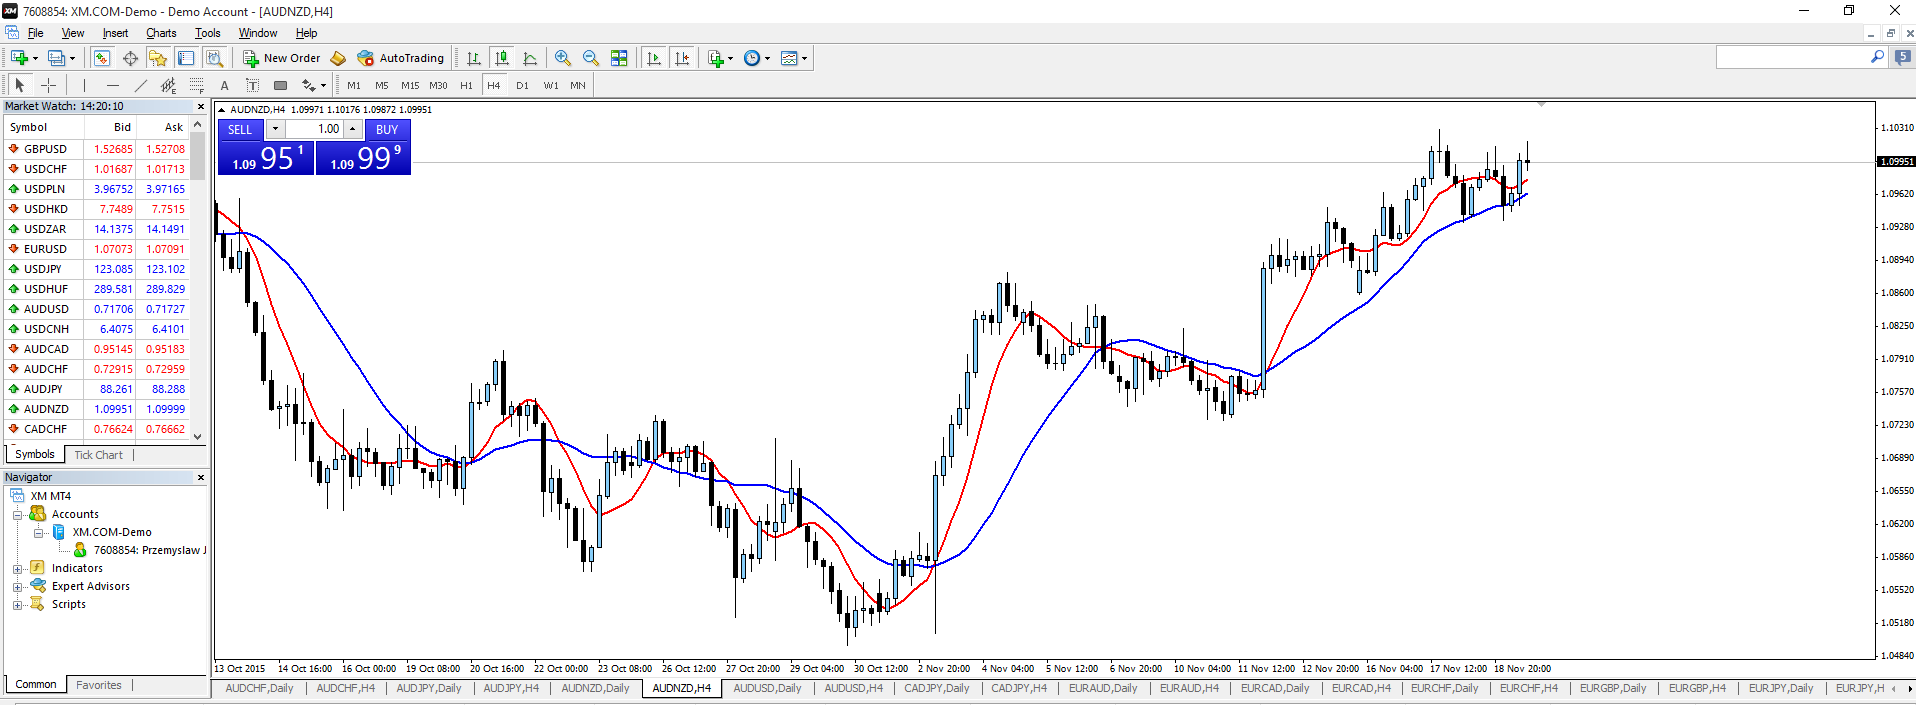 MetaTrader 4 tutorial 2